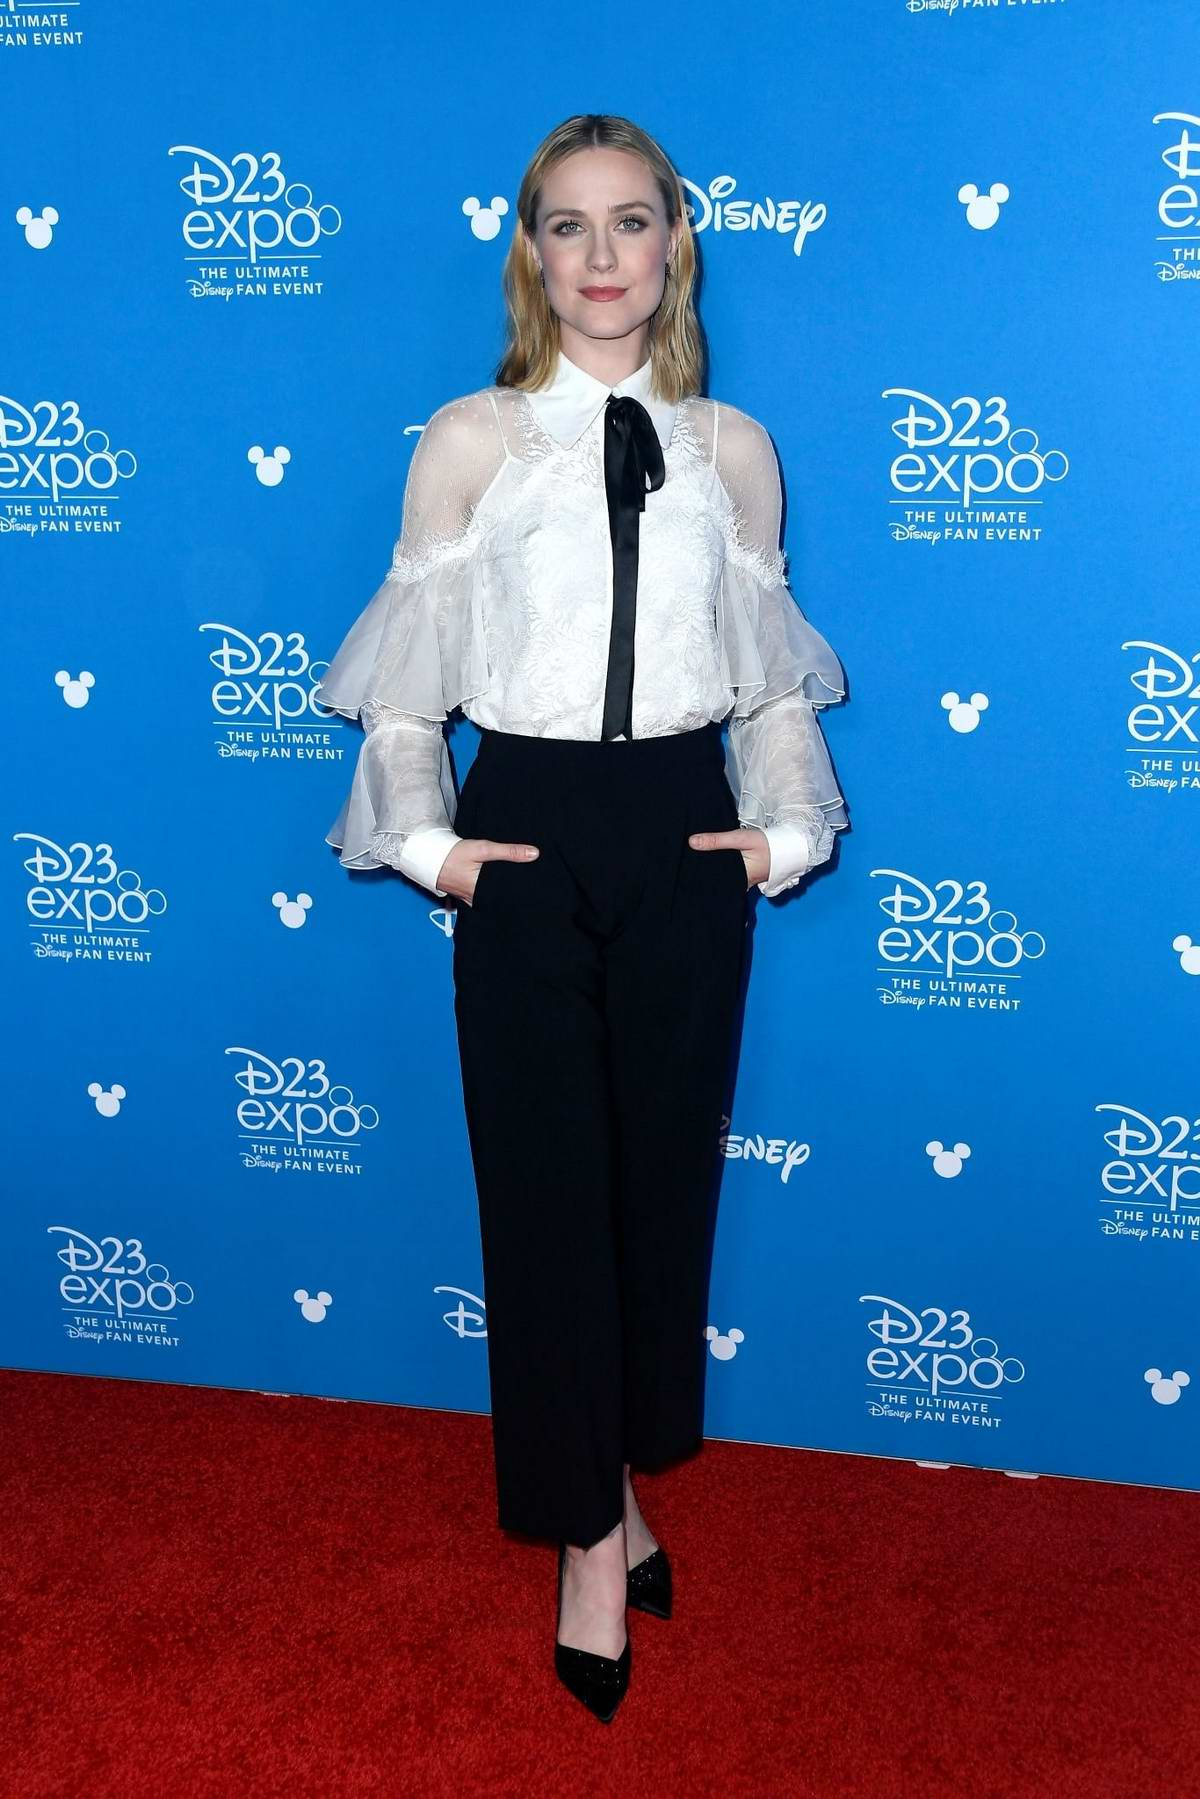 Evan Rachel Wood attends Disney D23 Expo 2019 at Anaheim Convention Center in Anaheim, California